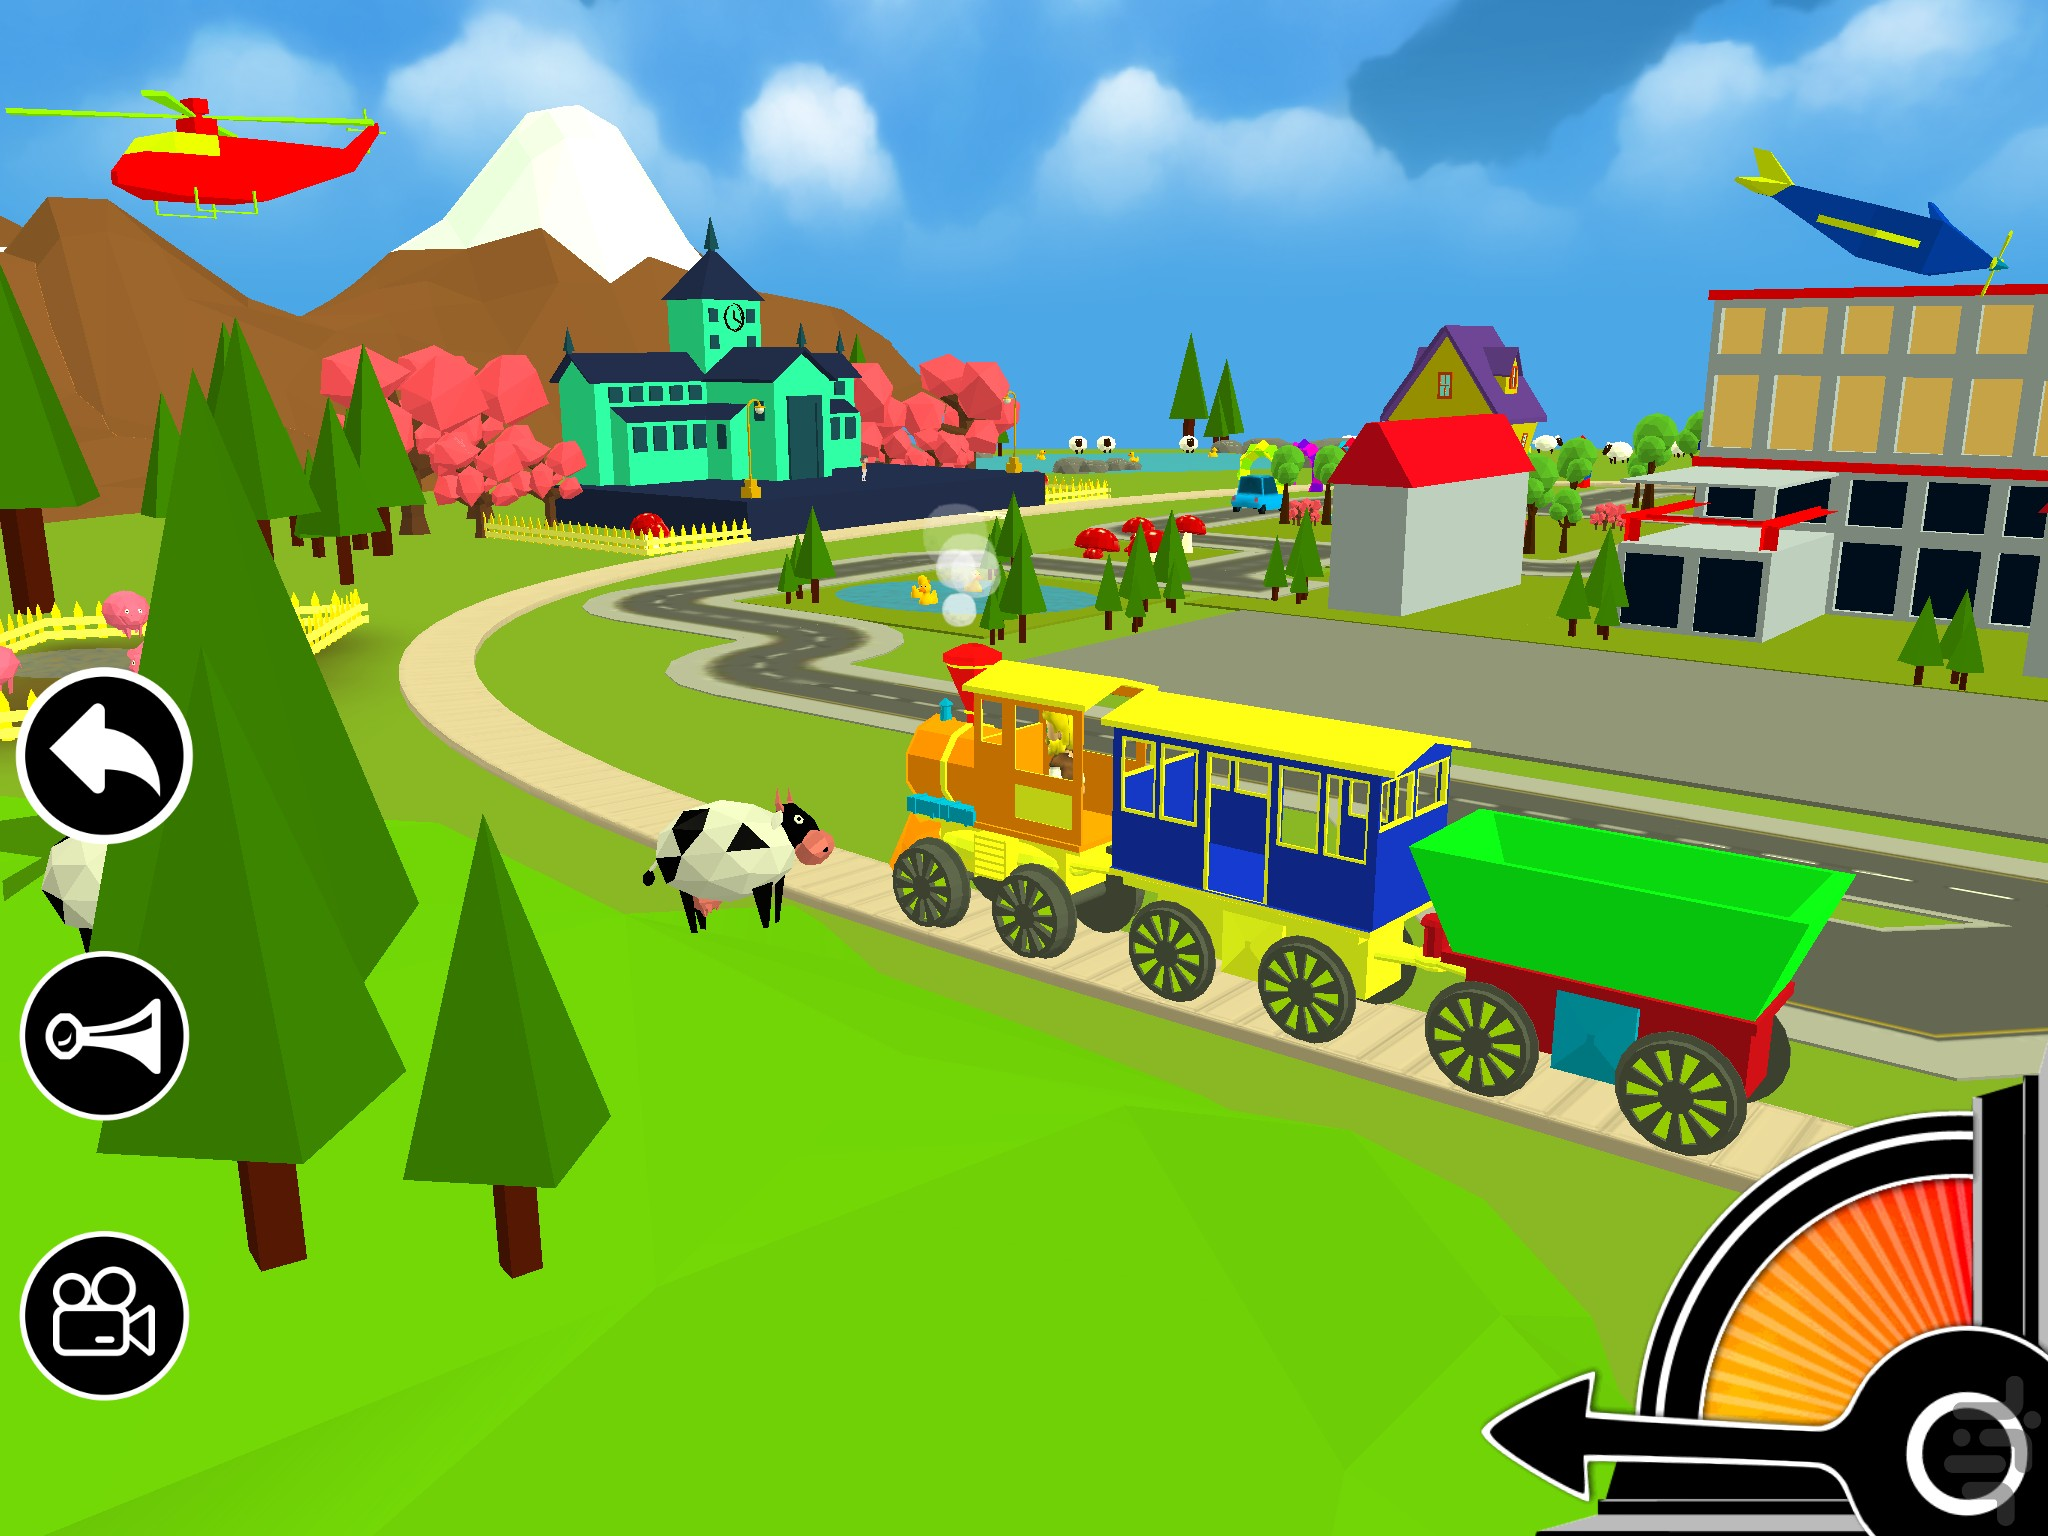 3D Toy Train Game for Android - Download | Cafe Bazaar